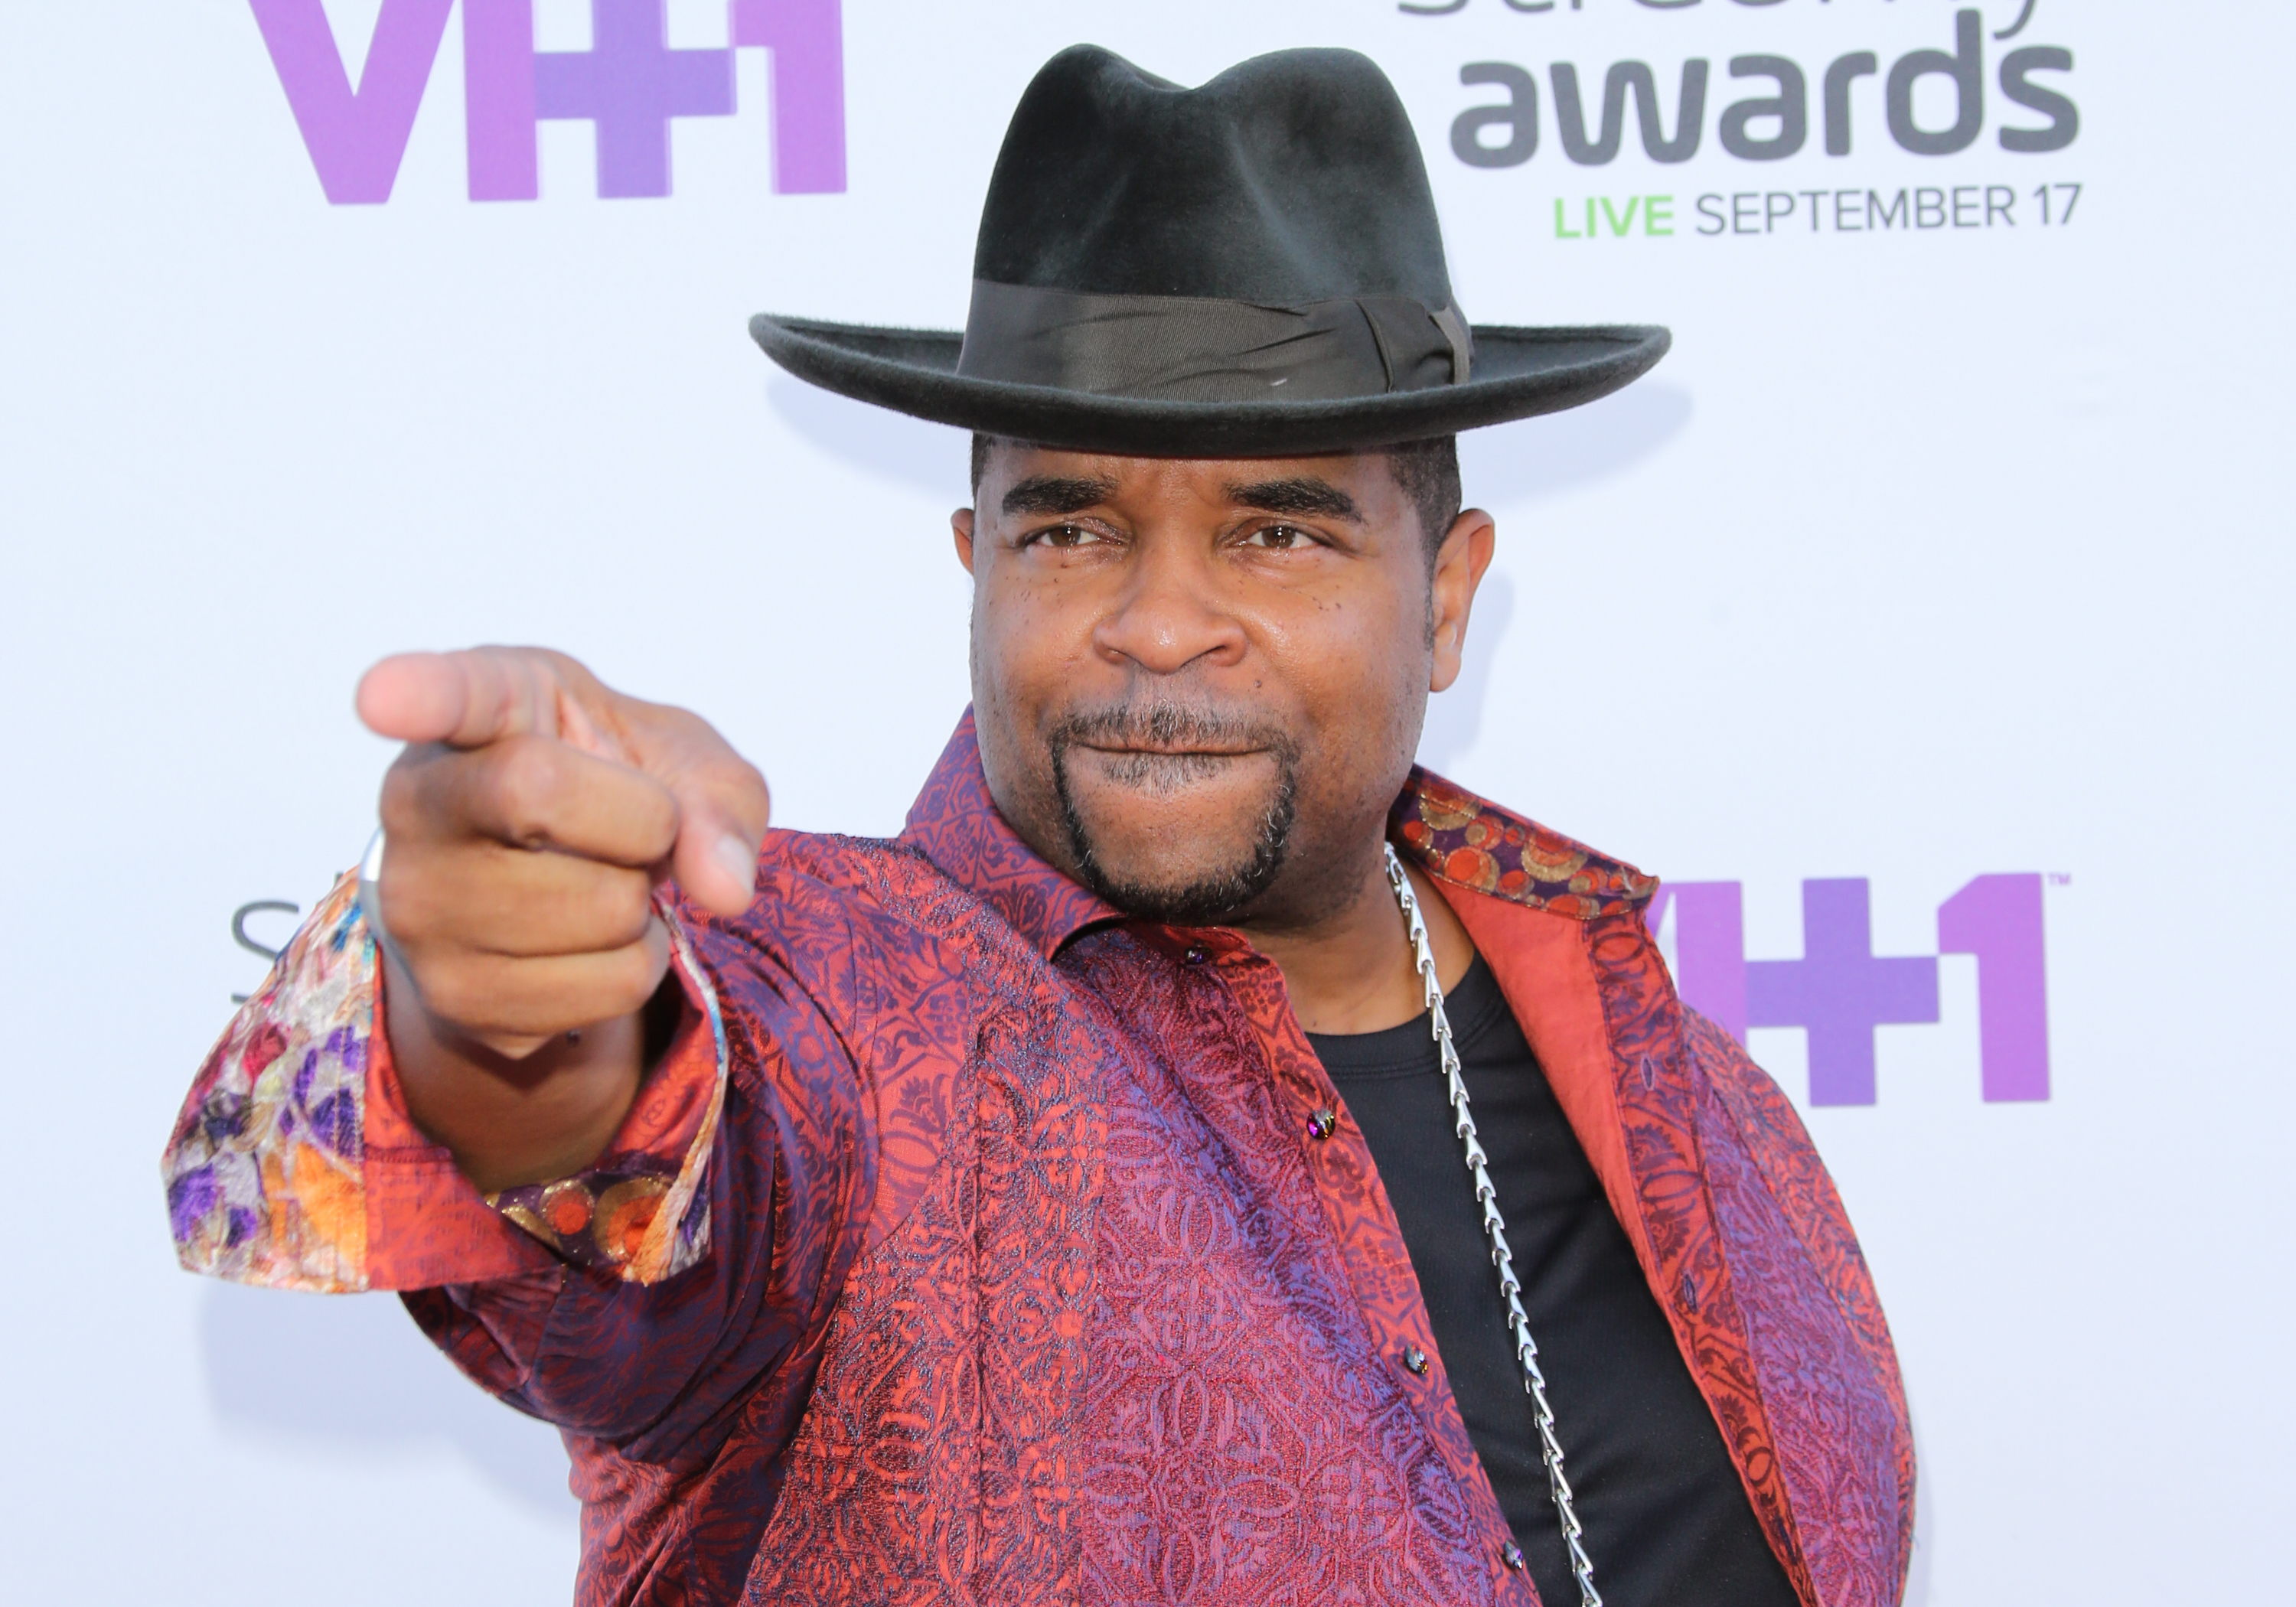 Rapper Sir Mix-a-Lot attends the 5th Annual Streamy Awards at The Hollywood Palladium on September 17, 2015 in Los Angeles, California.